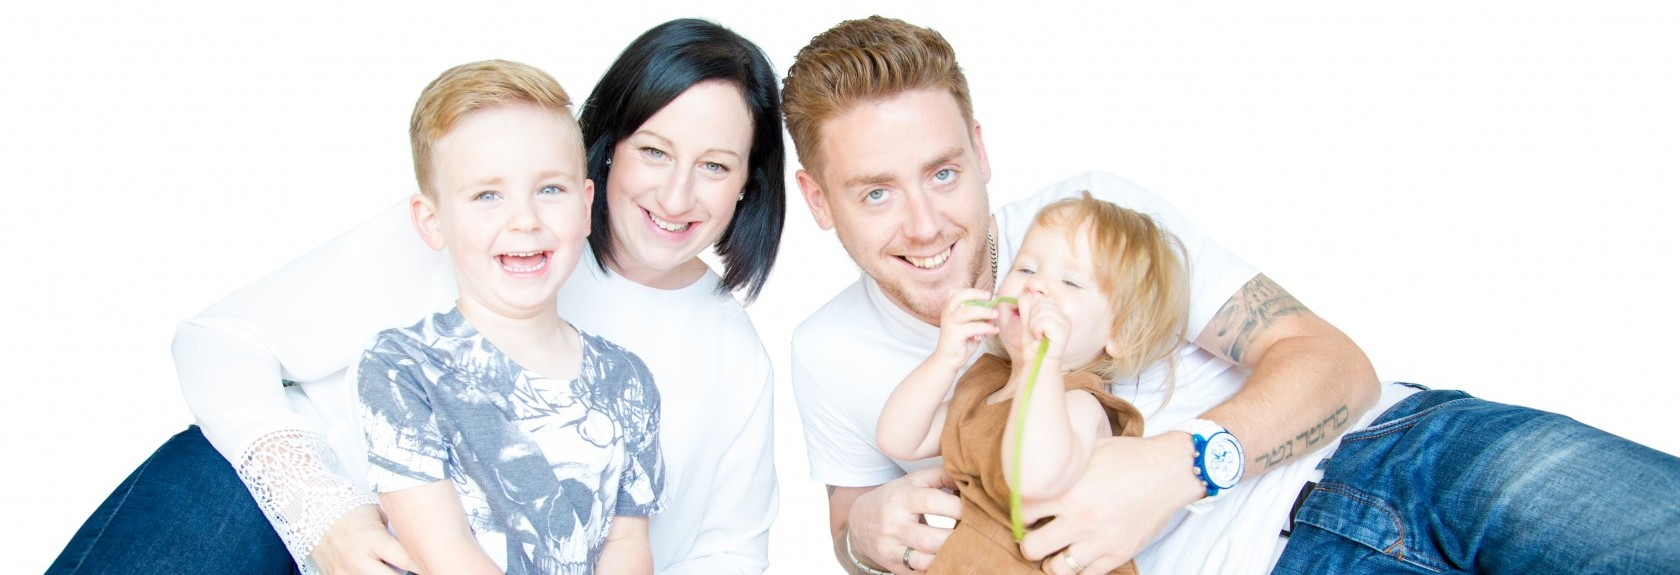 Family Photoshoot, Essex Photographer, Photography studio